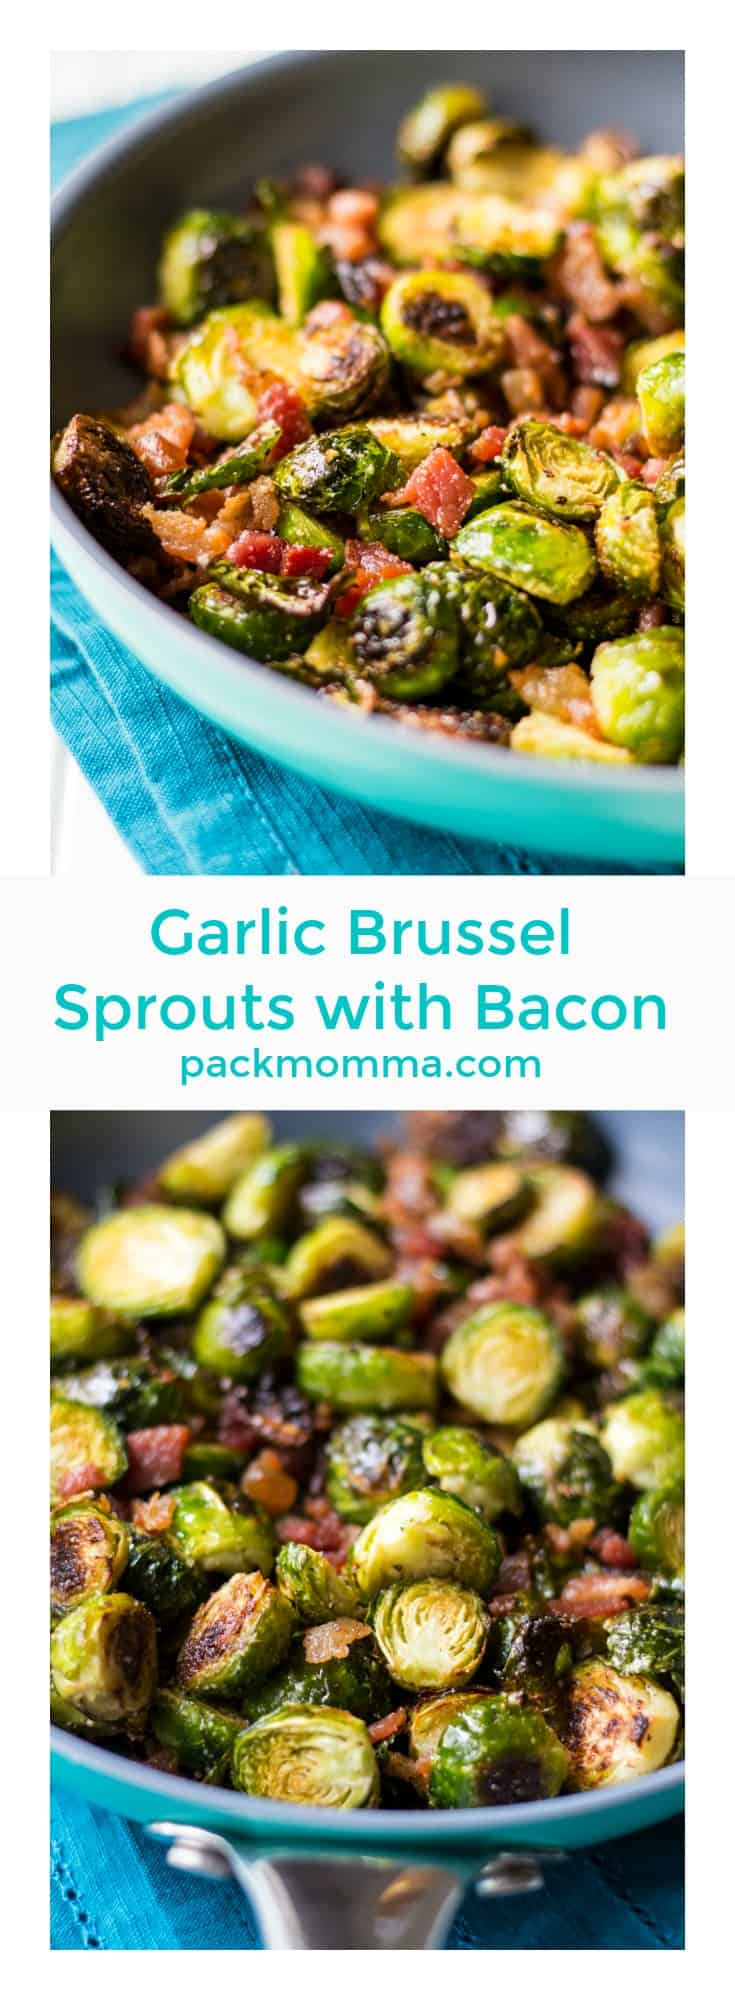 Garlic Brussel Sprouts with Bacon | Garlic Brussel Sprouts with Bacon is the perfect vegetable side dish for any meal and is ideal for serving to family and friends at your holiday table this year. | Pack Momma | https://www.packmomma.com | #brusselsprouts #vegetable #bacon #holidayfood #thanksgivingfood #christmasfood #sidedish